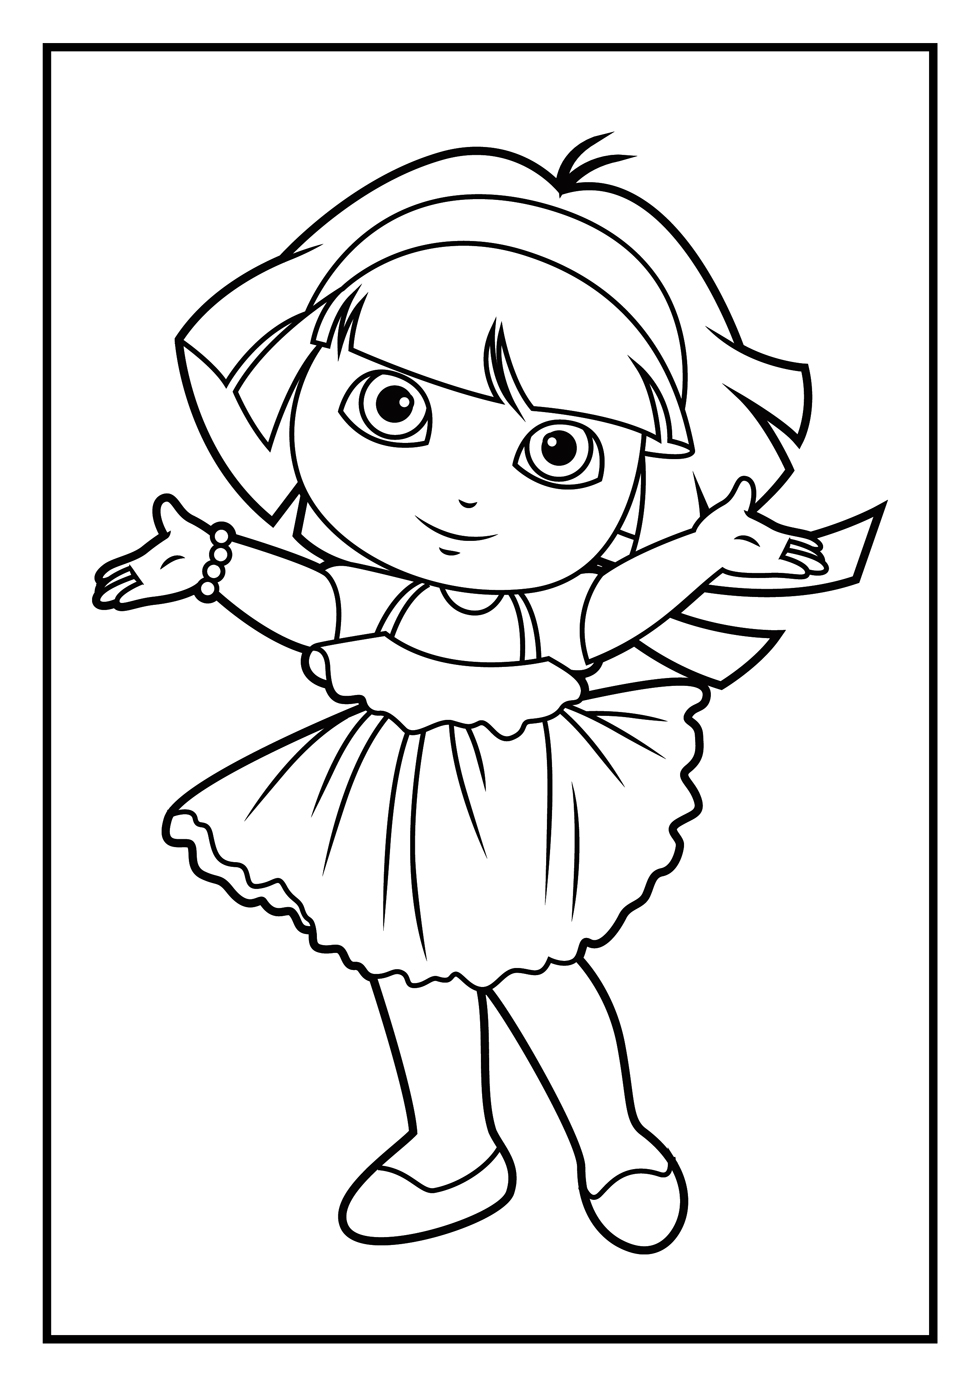 dora coloring page print download dora coloring pages to learn new things dora coloring page